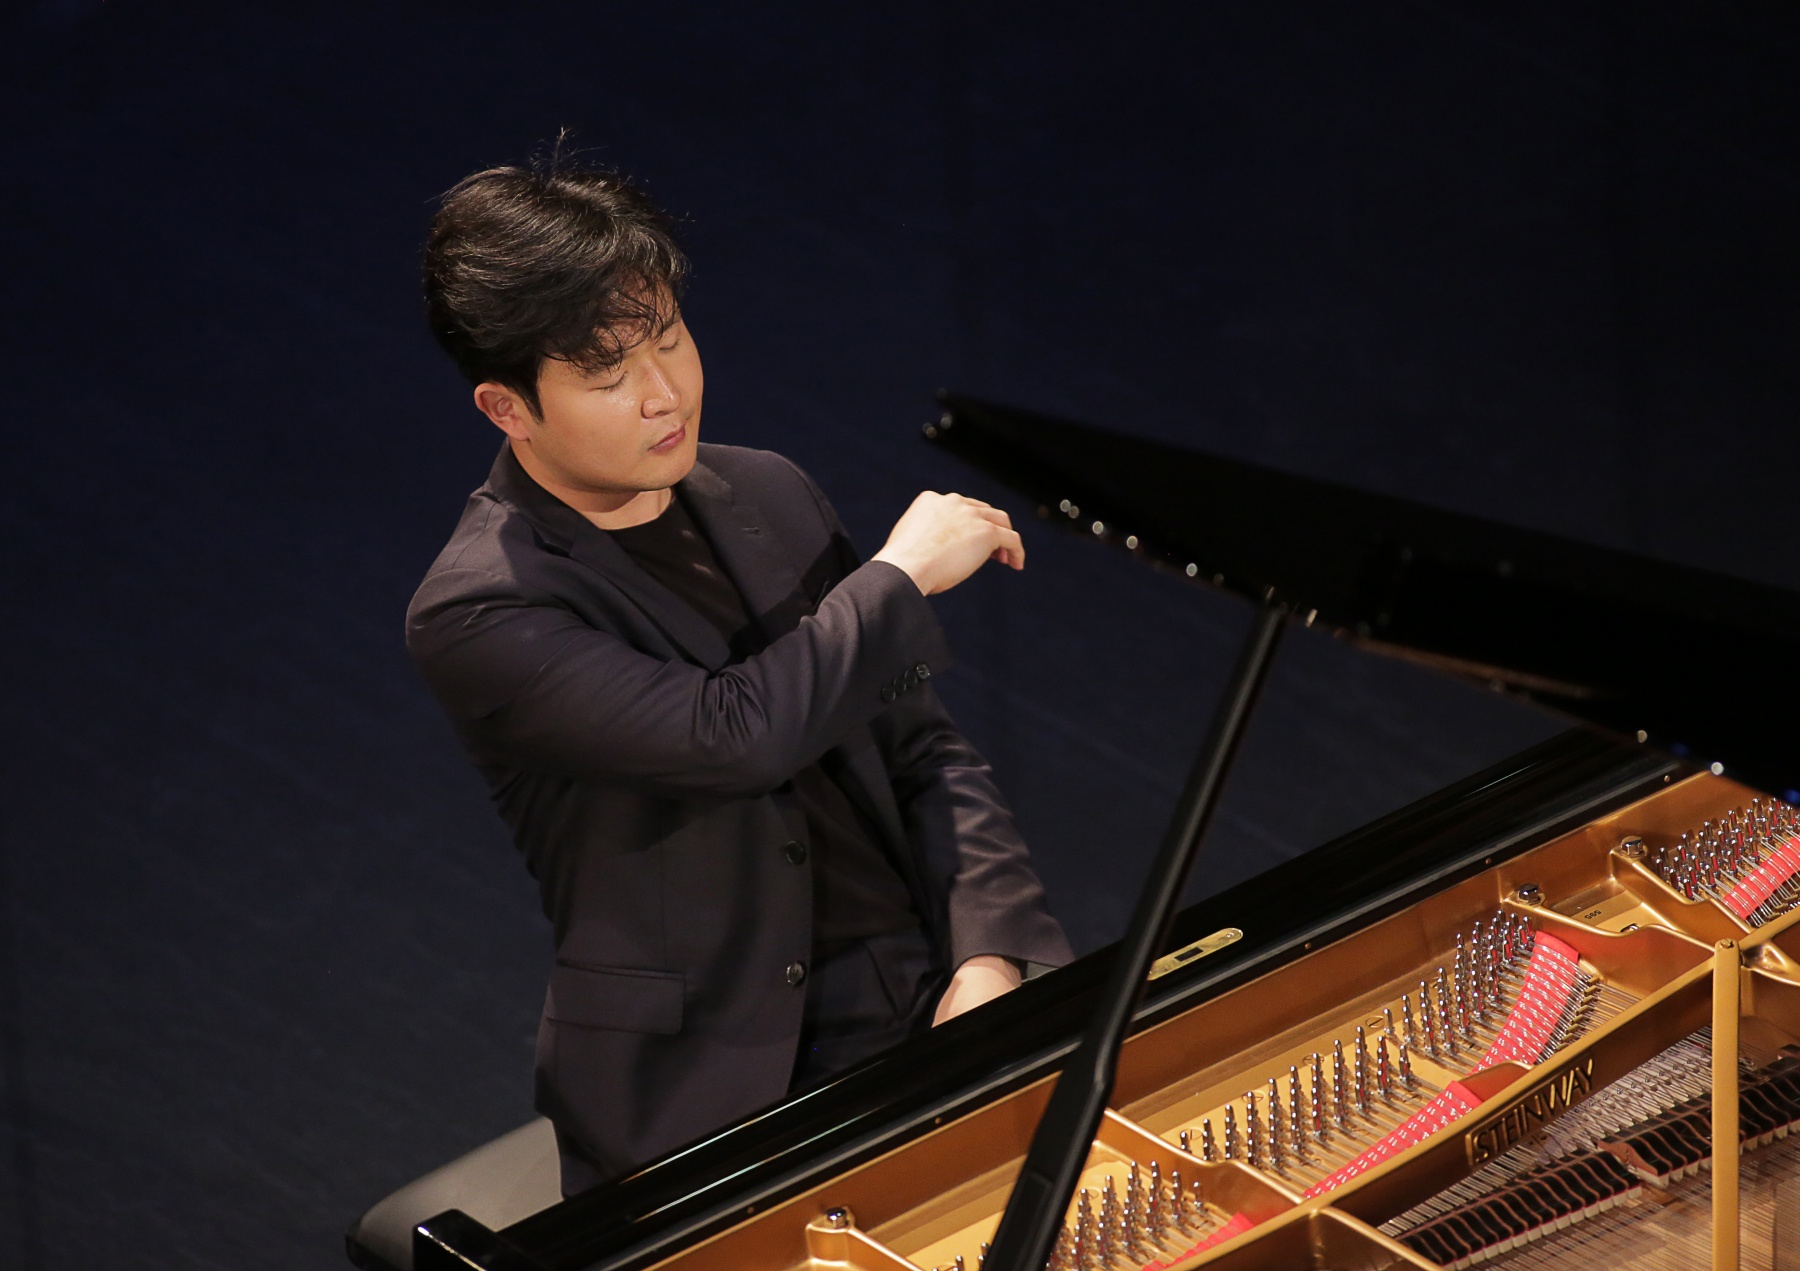 The Korea Herald: Pianist Sunwoo Yekwon to pay homage to Schumann with 'My Clara' tour